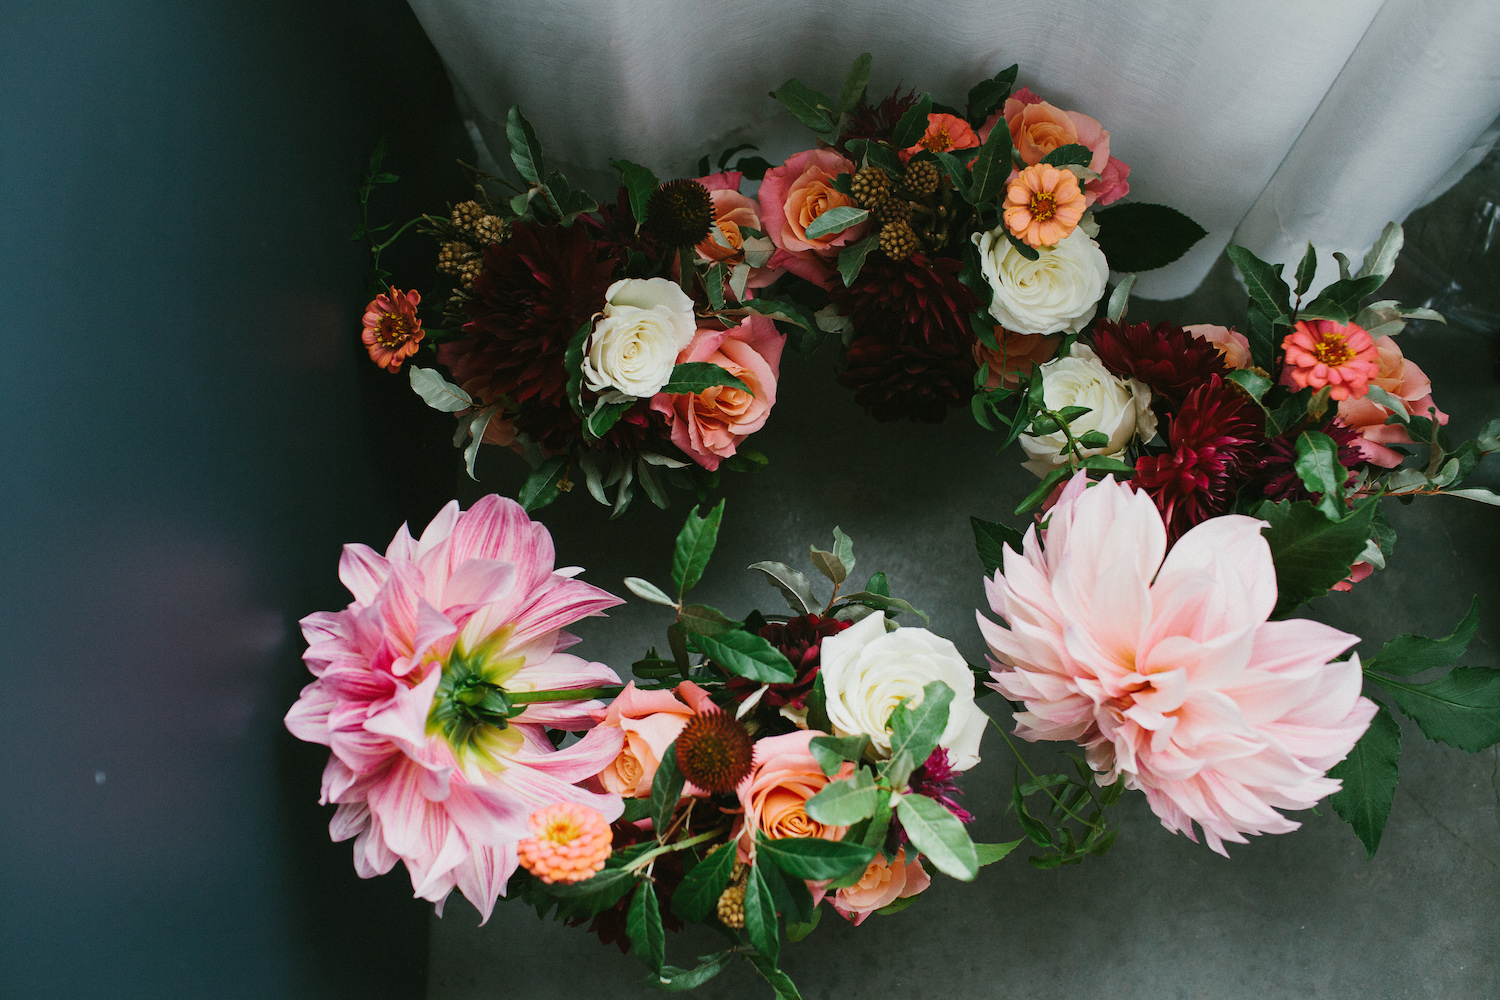 Full Aperture Floral & Corey Torpie Photography  - Brooklyn Wedding - 7.jpeg